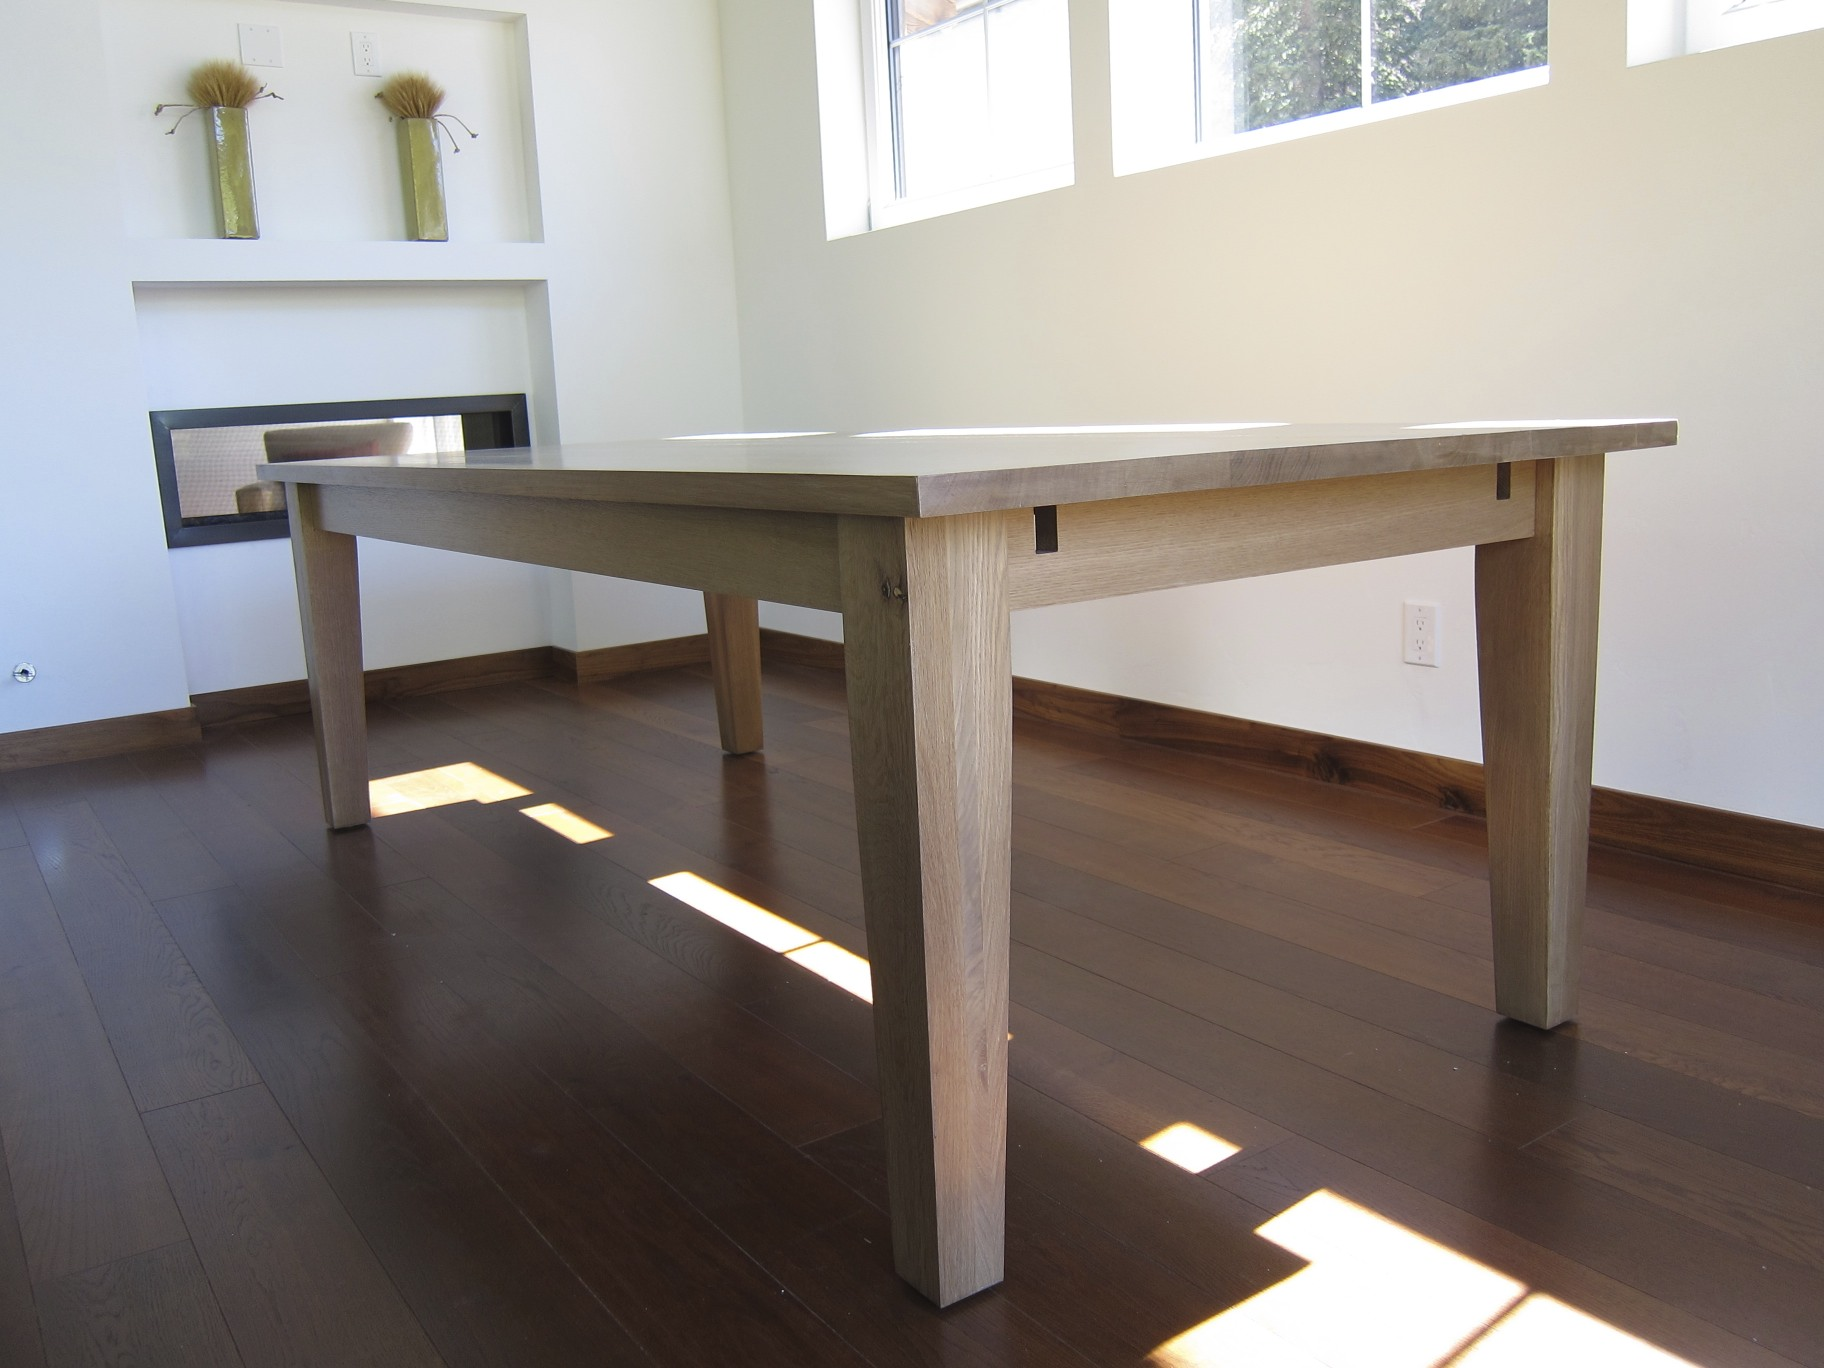 Dining table general contractor new construction for Dining table construction